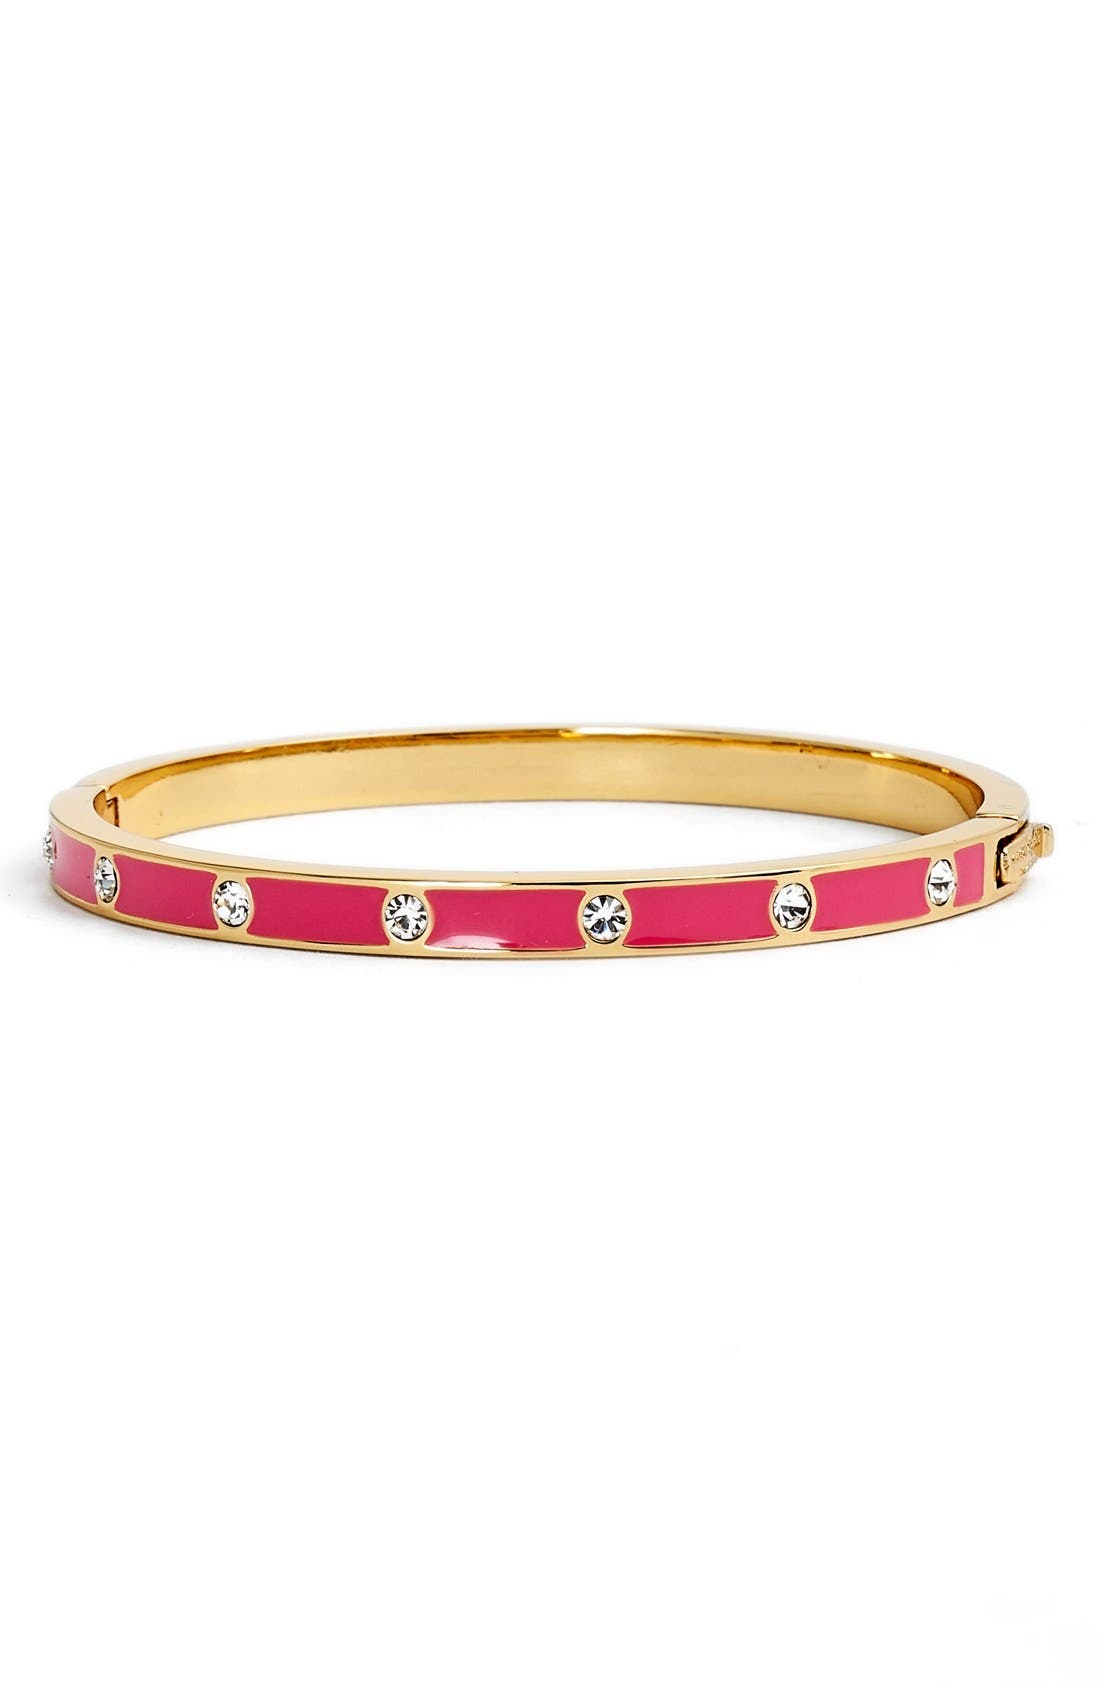 crystal & enamel hinge bangle,                             Main thumbnail 9, color,